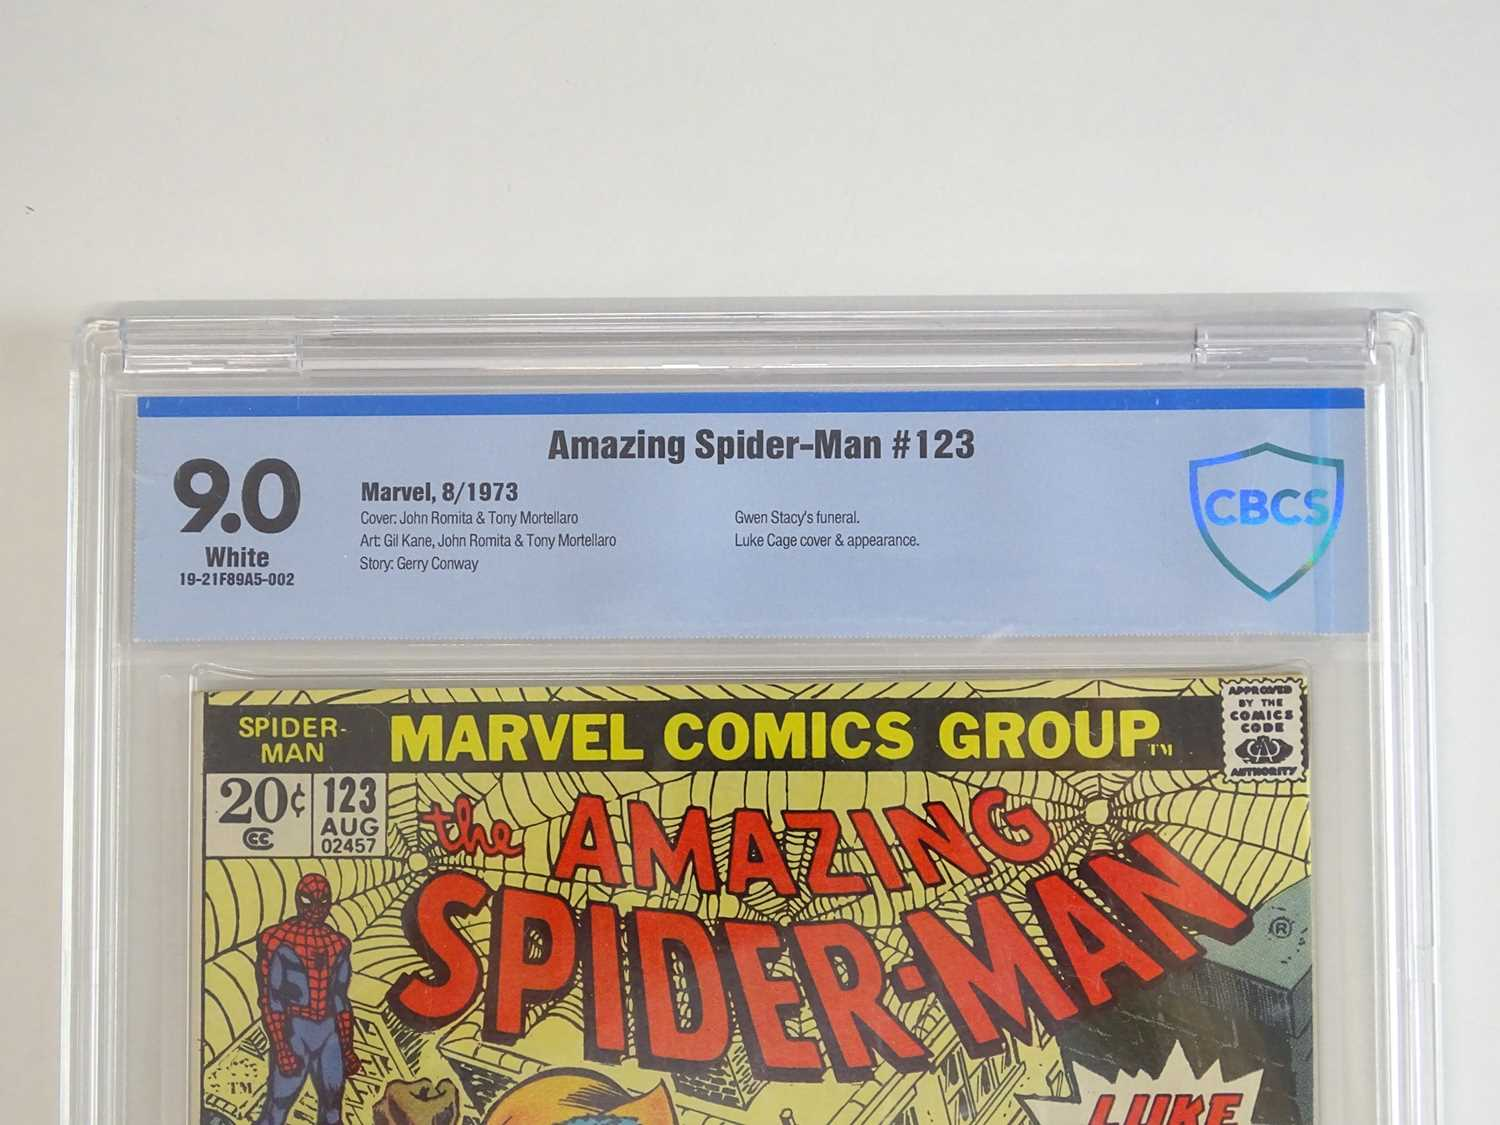 AMAZING SPIDER-MAN #123 - (1973 - MARVEL) - SEALED & GRADED 9.0 by CBCS - WHITE Pages - Luke Cage - Image 2 of 4